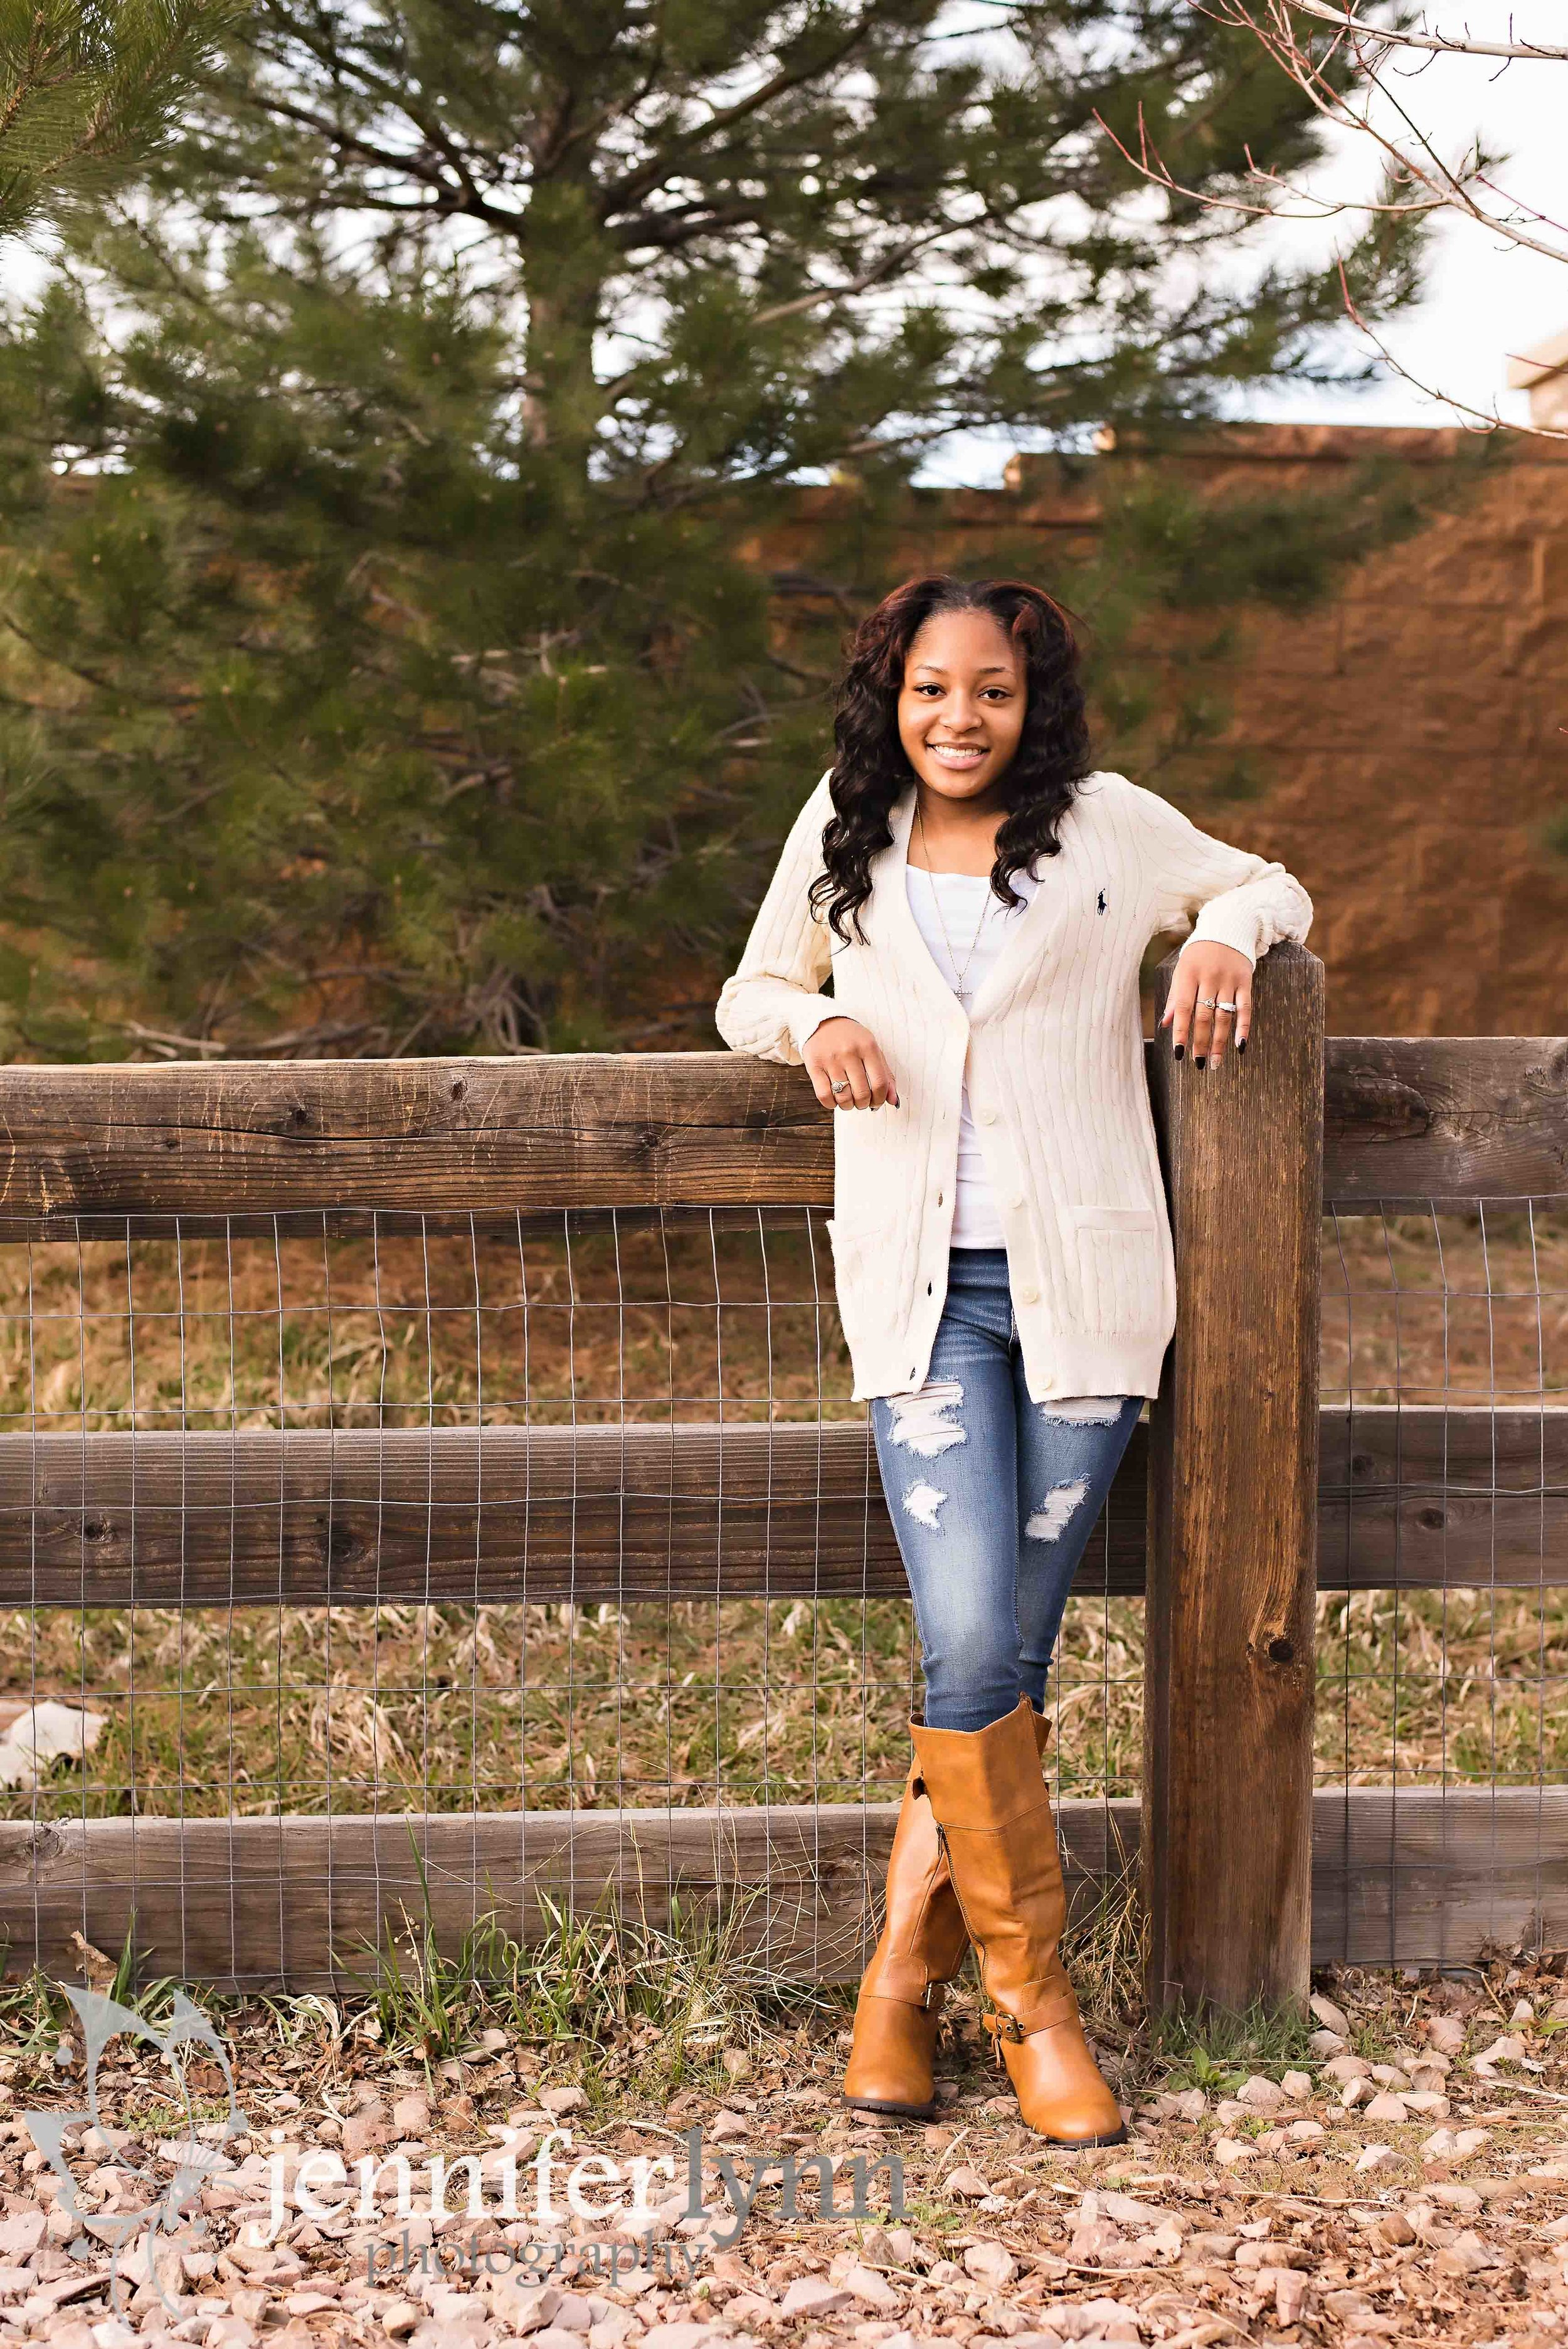 Senior Girl-Leaning on Rustic Wooden Fence